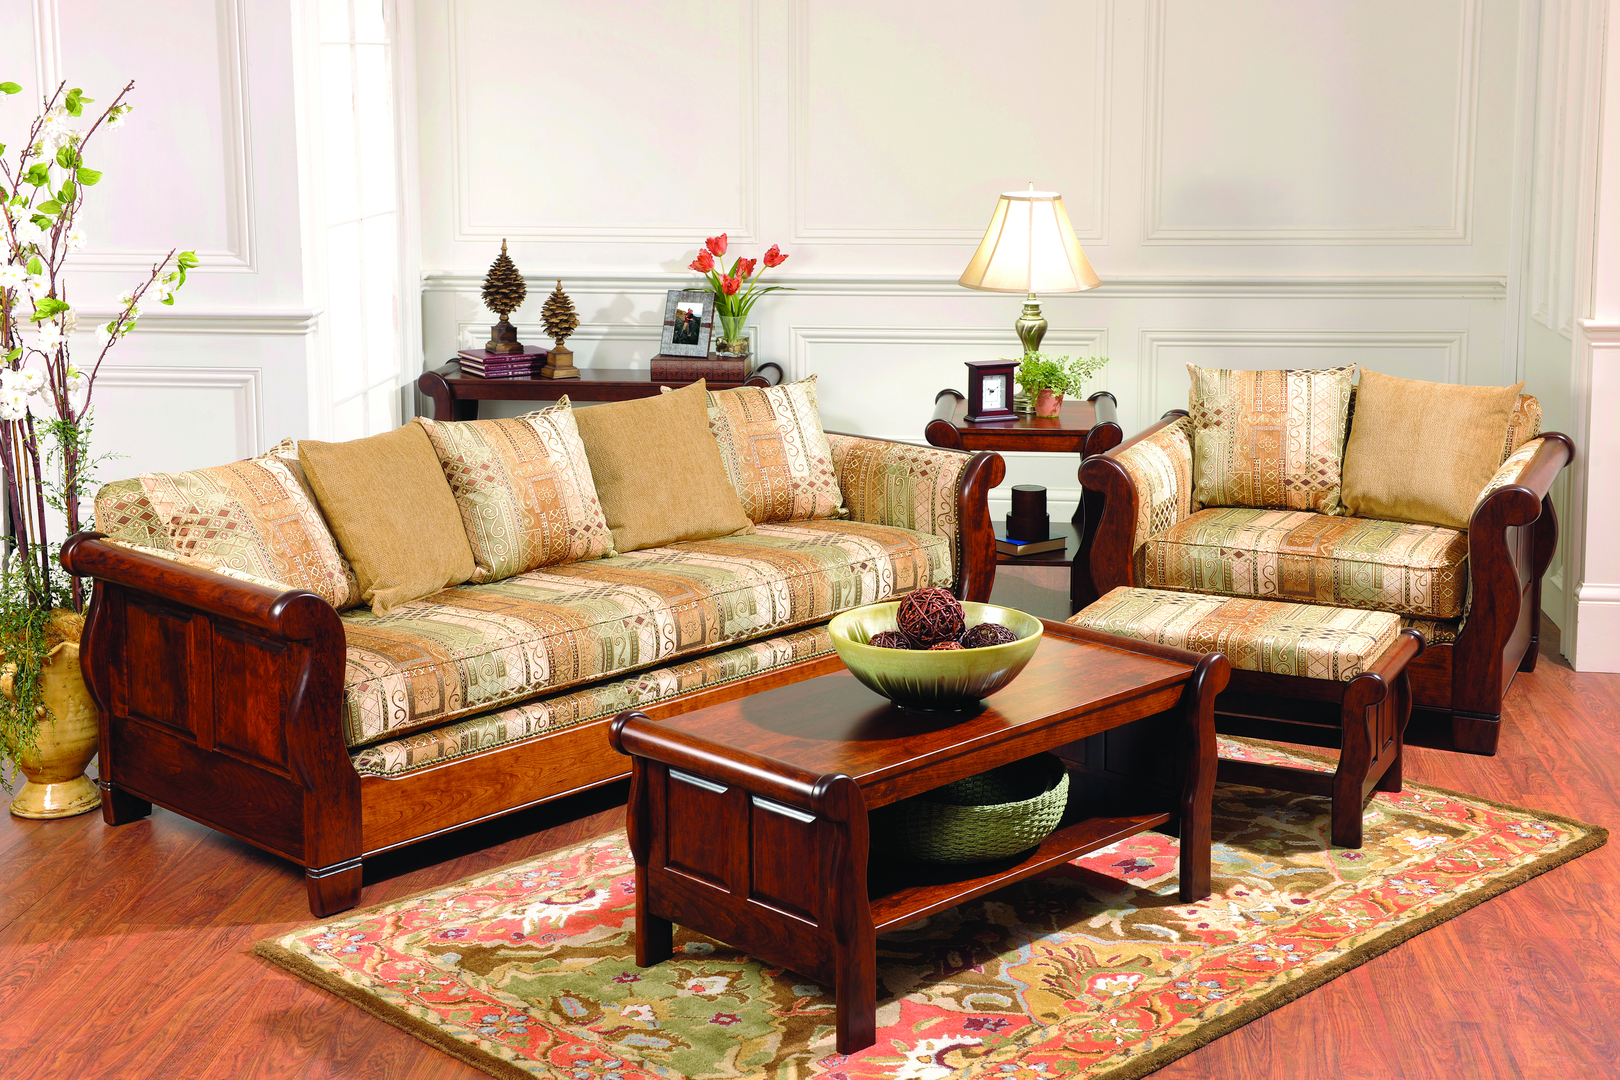 Amish Living Room Furniture - Our Family Craft Shop Inc.